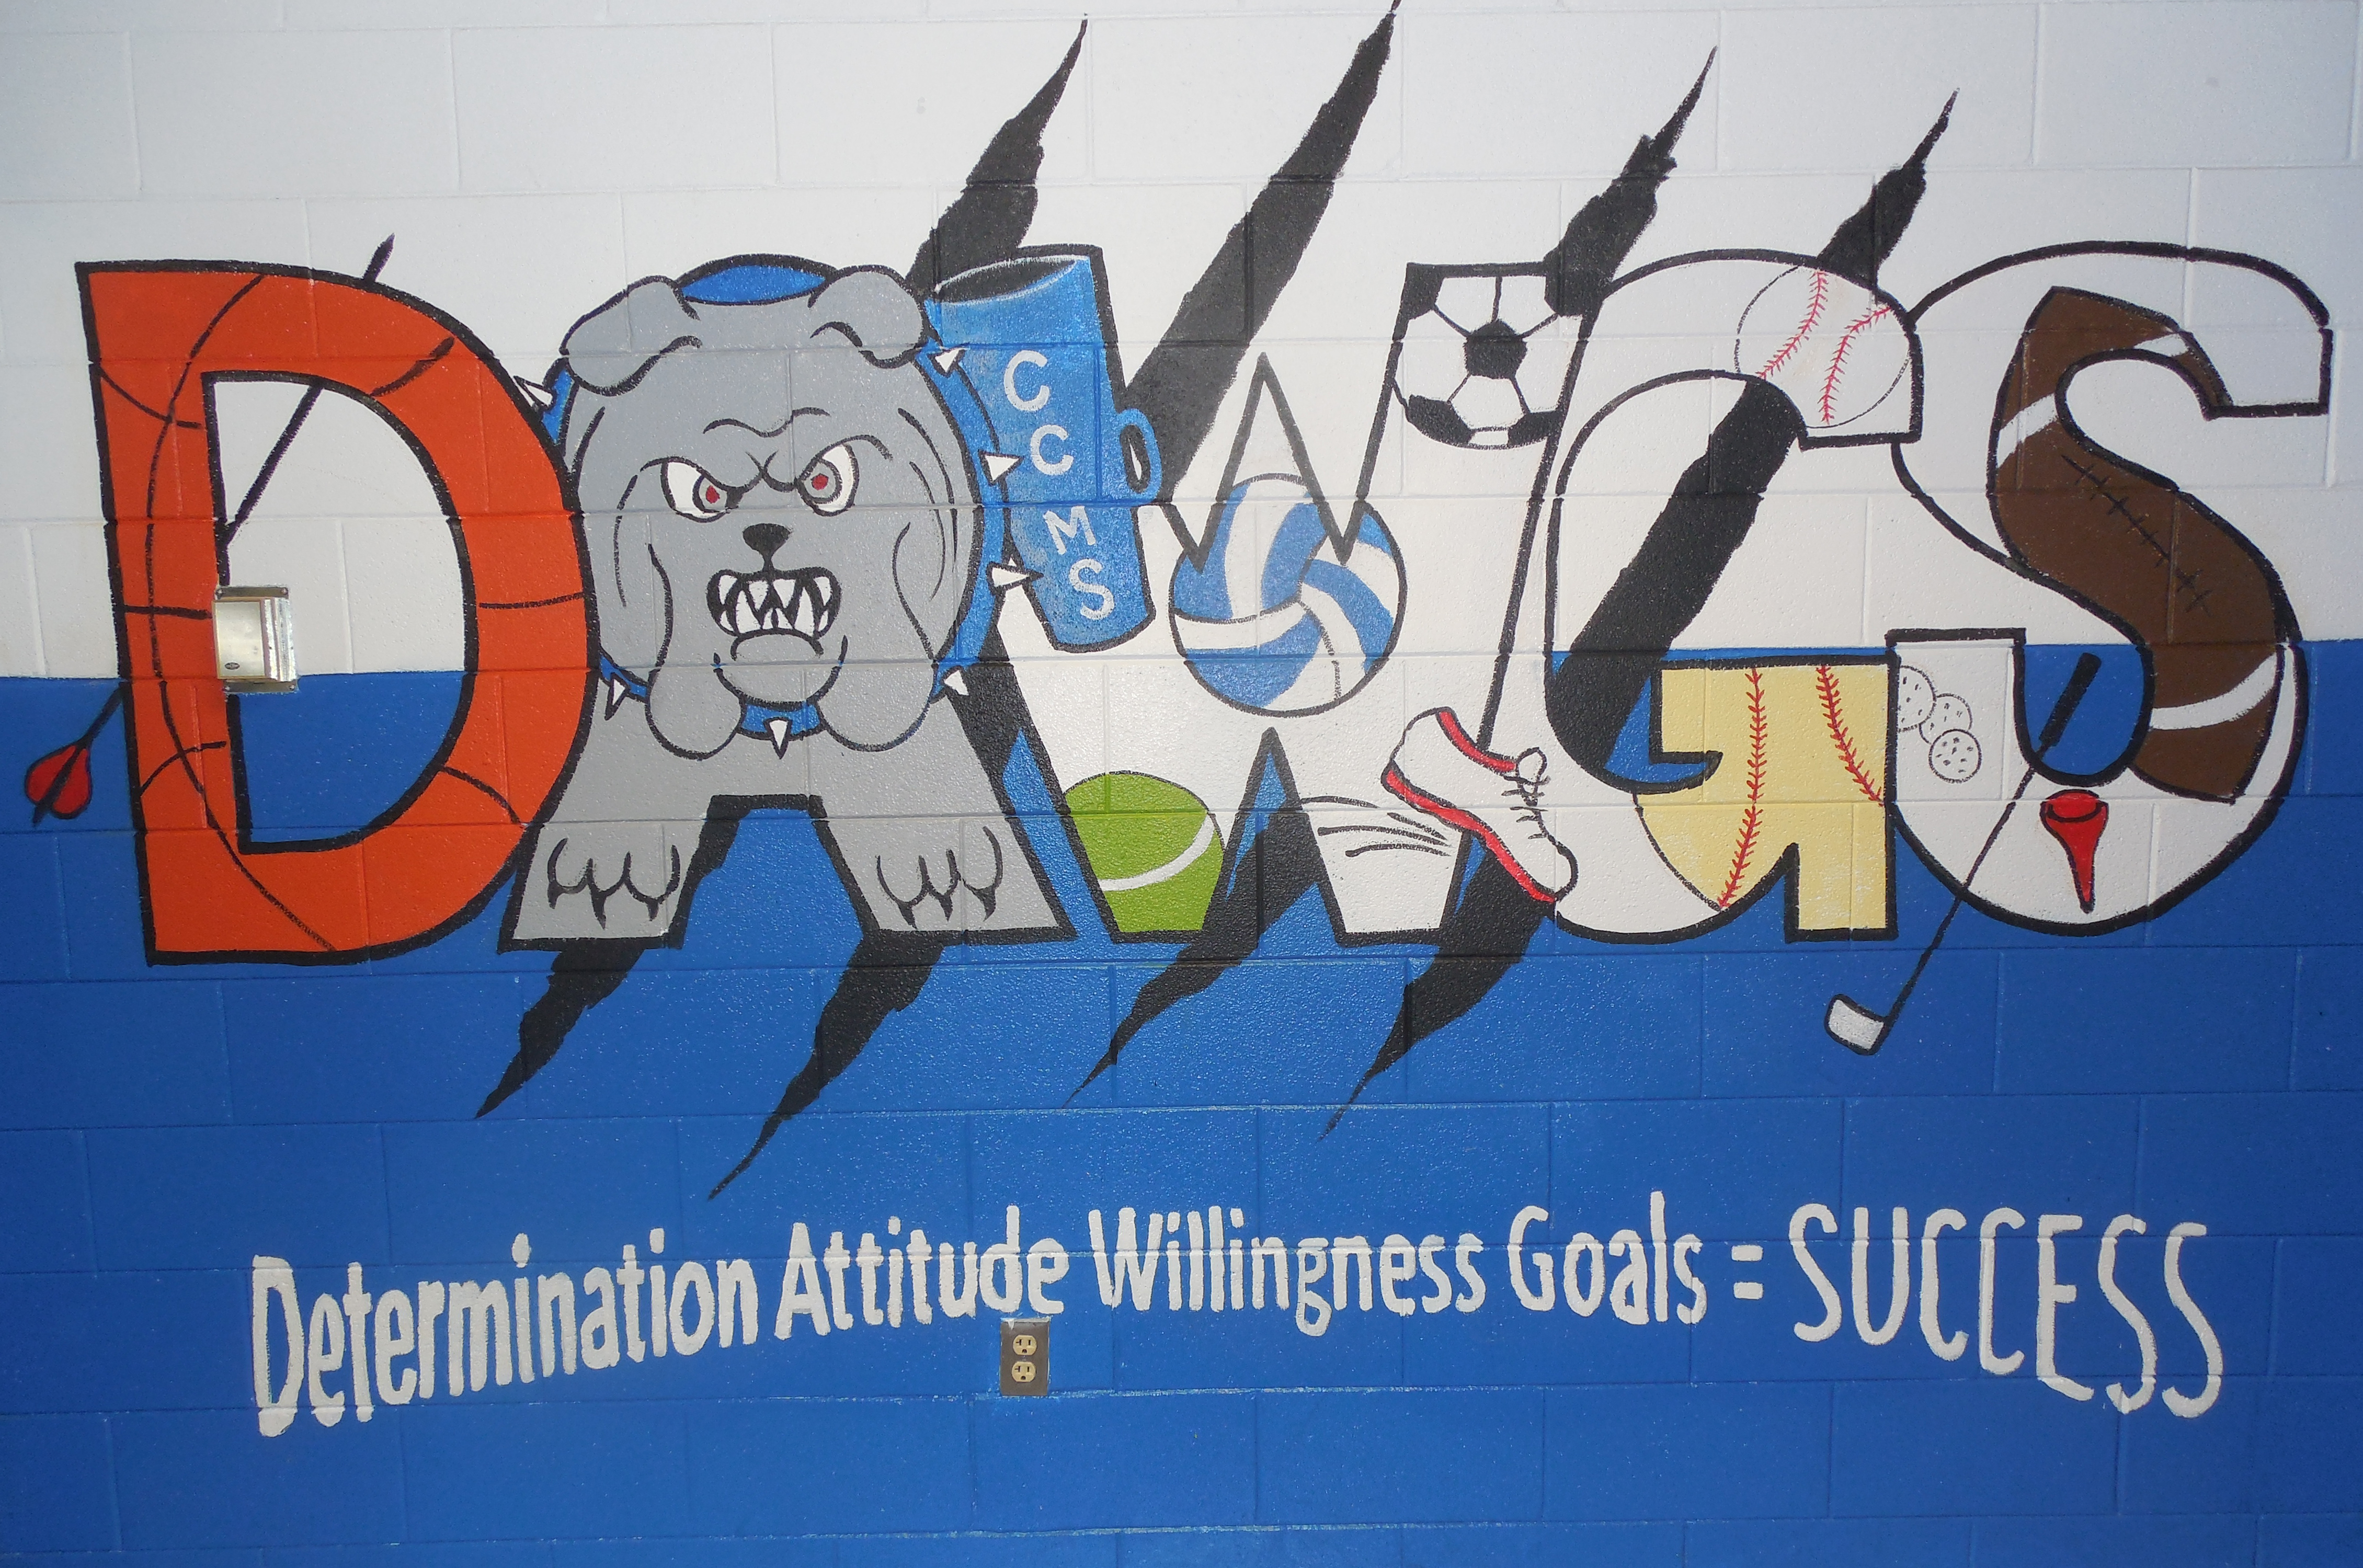 A mural depicting the DAWGS motto was the culminating activity in the VSA Arts Inclusion Project at CCMS.